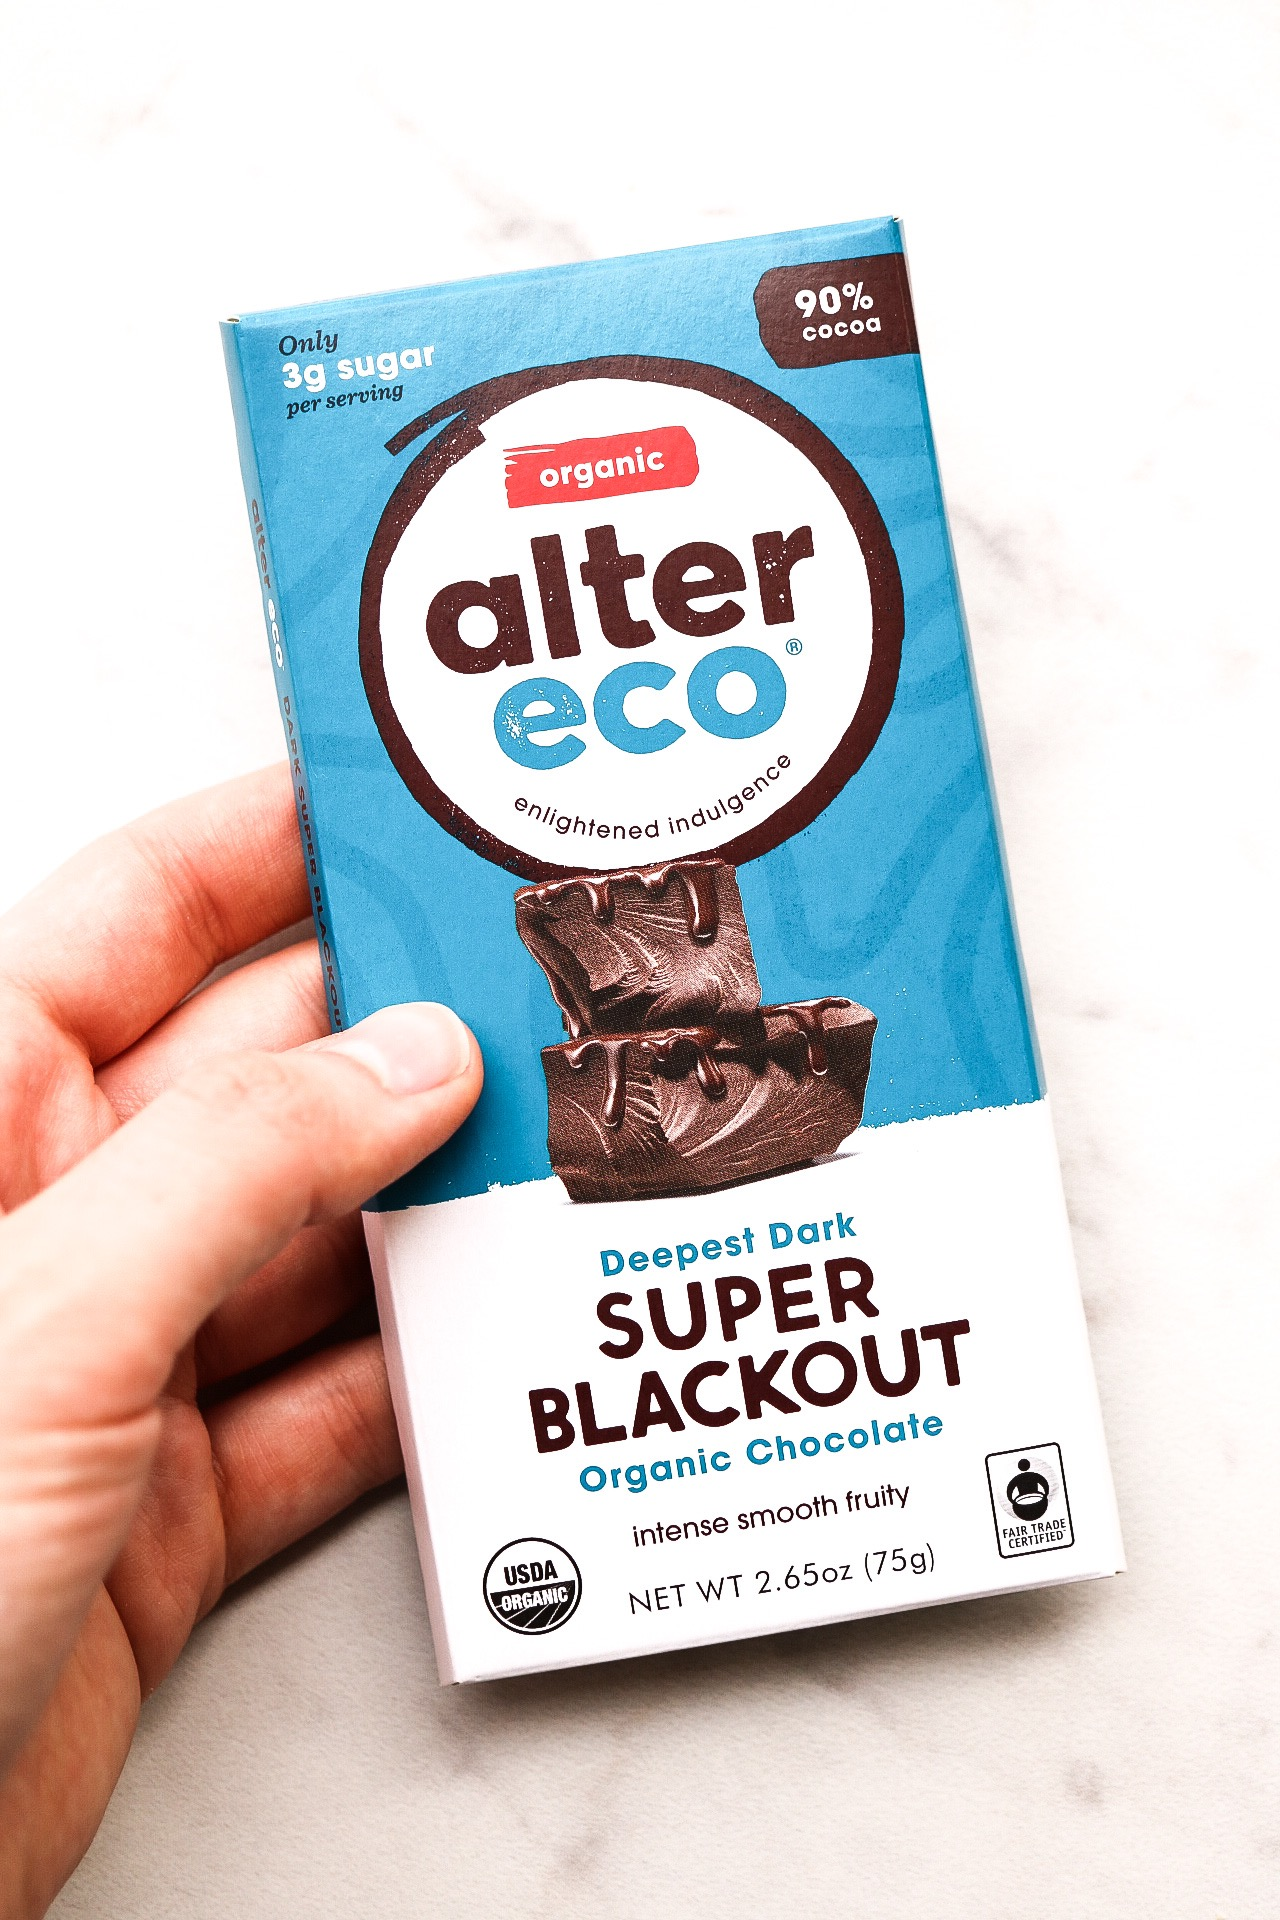 I used Alter Eco 90% dark chocolate in the pudding filling - it made it that much more chocolatey and smooth.